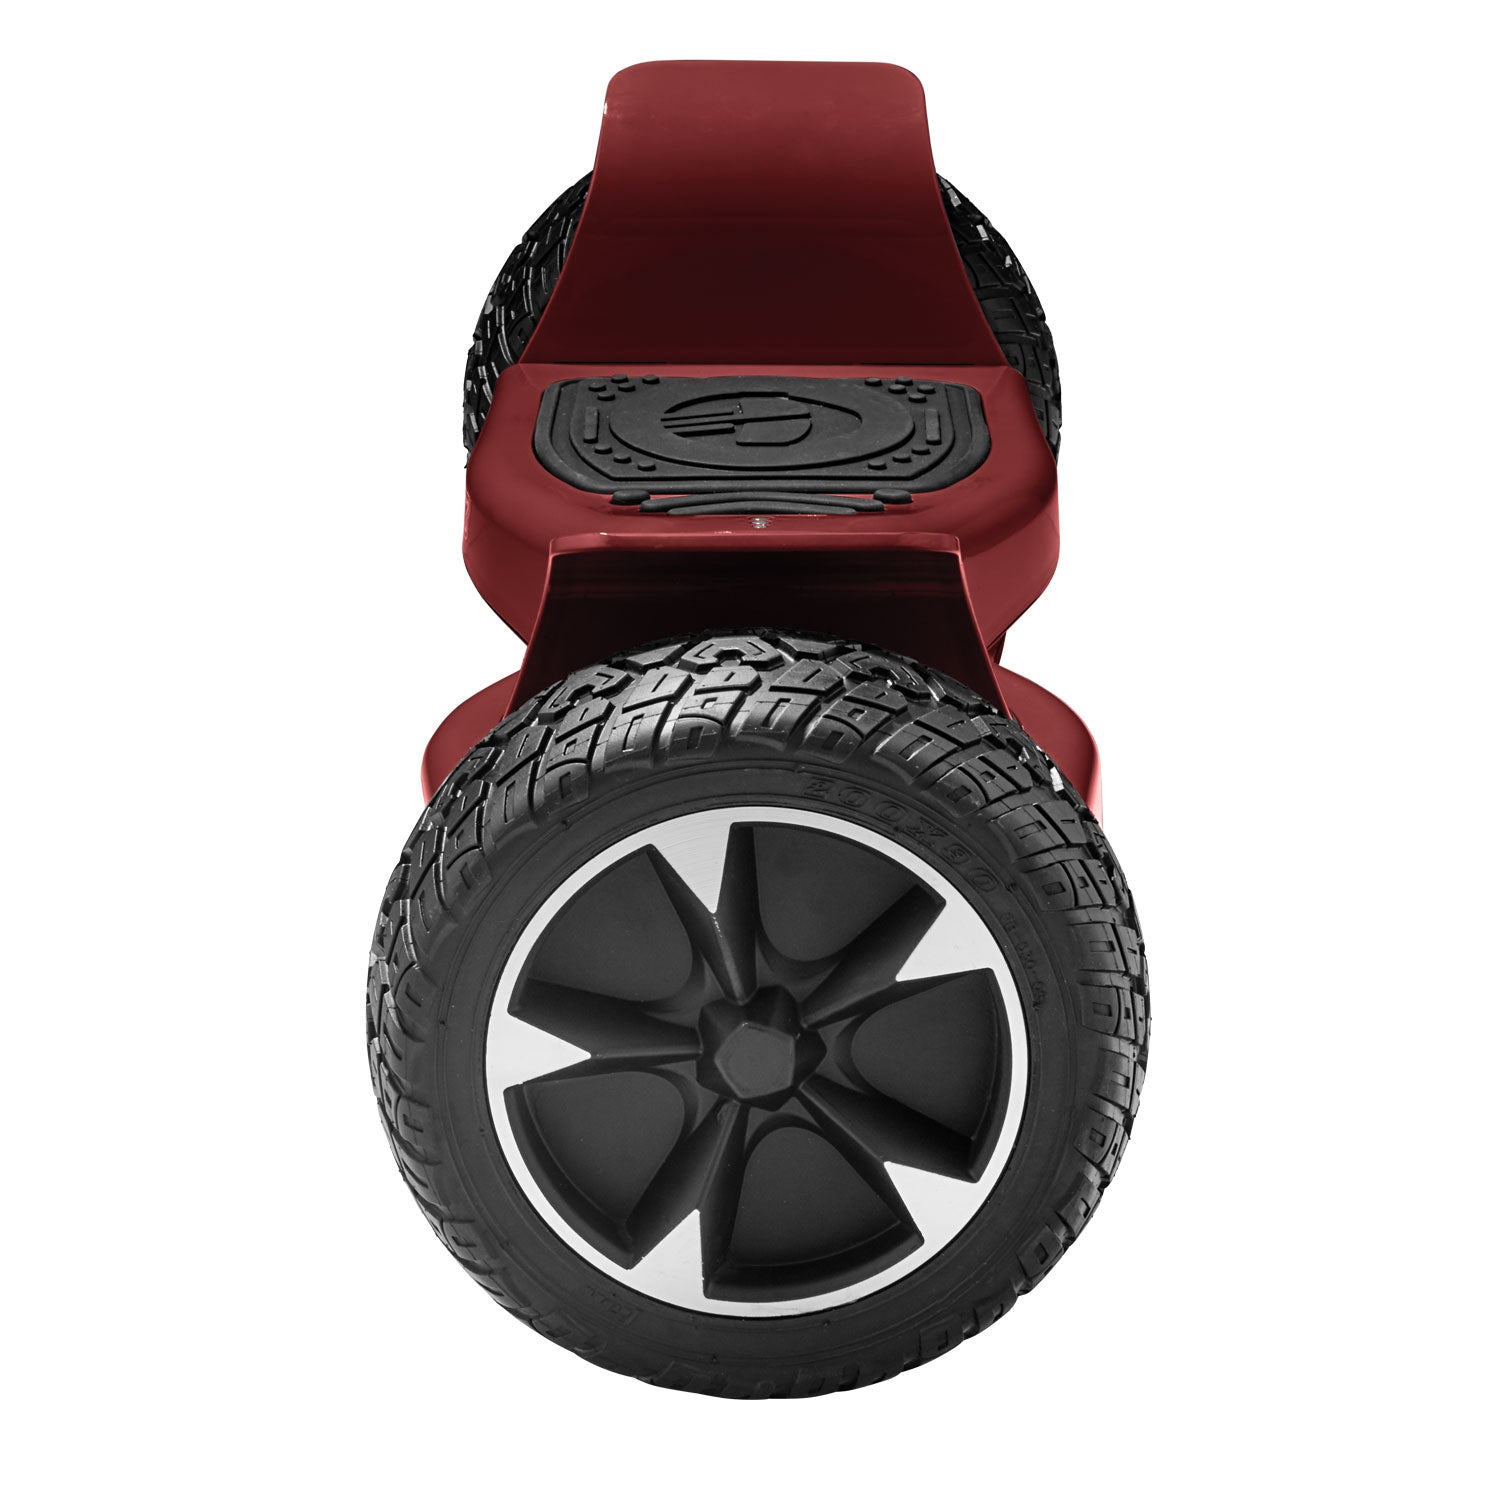 red xl off road hoverboard side view